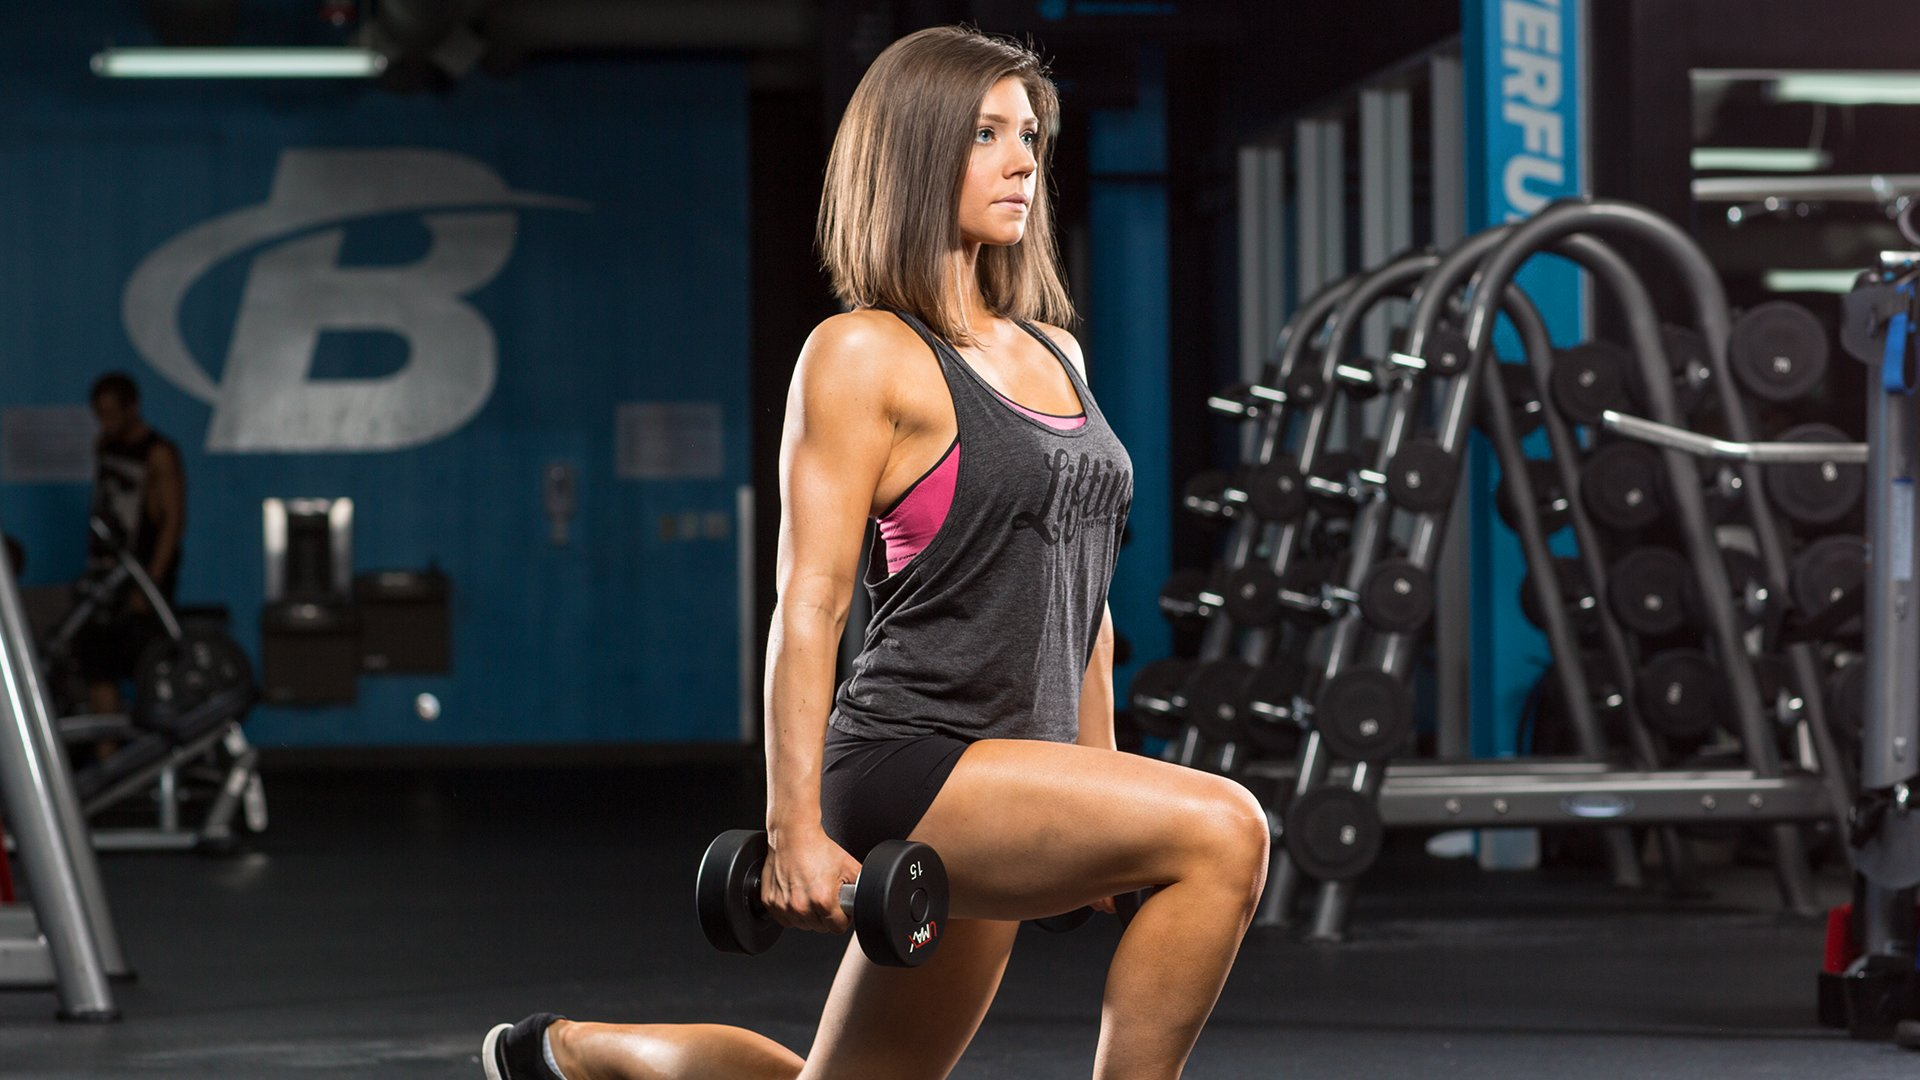 Short Intense Workouts To Build Muscle